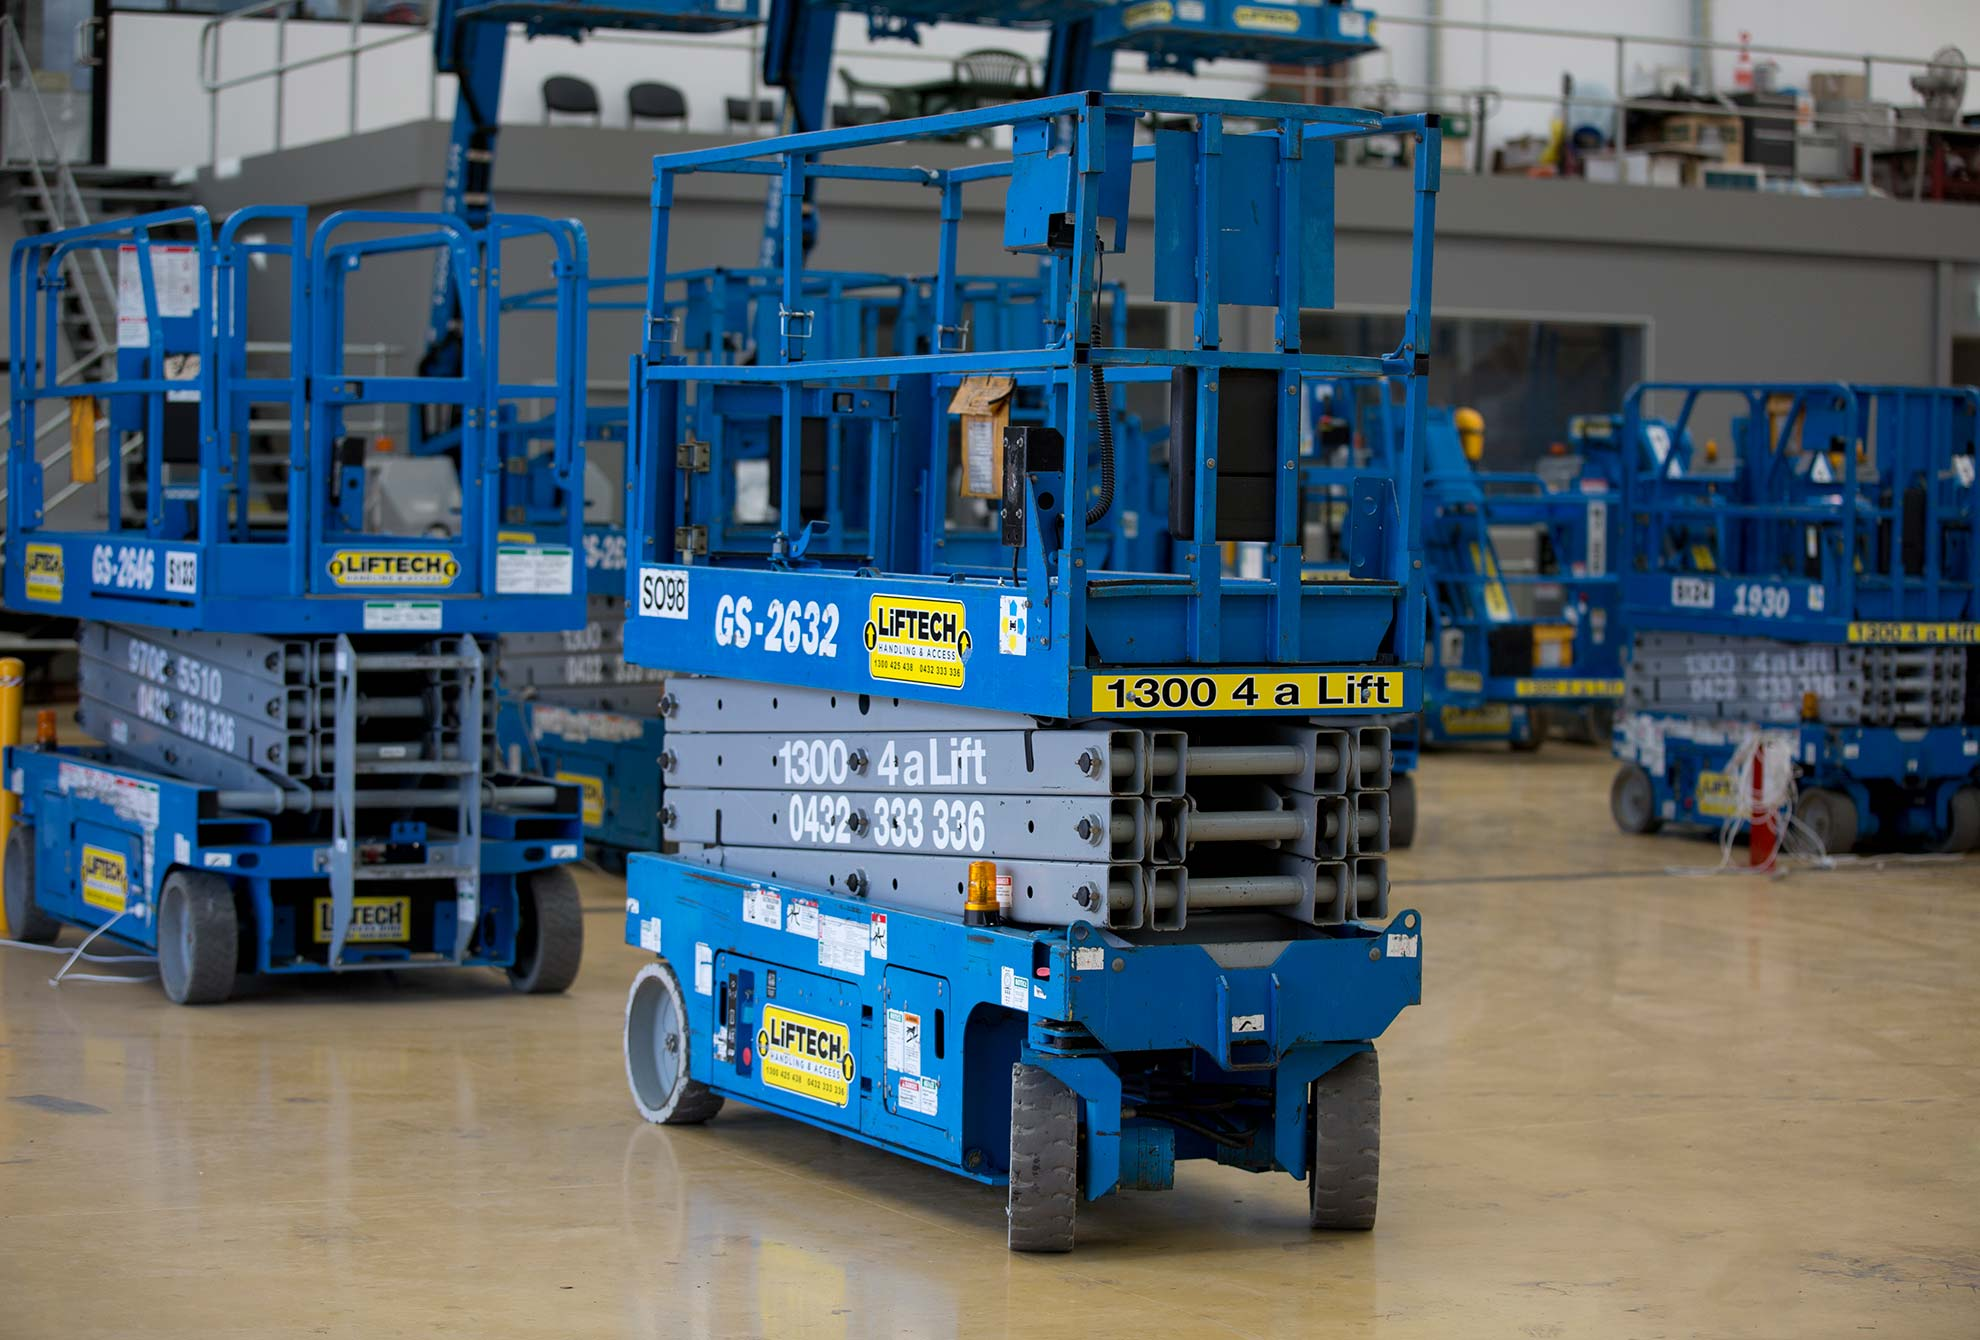 8m Narrow Scissor Lift for Hire in Melbourne